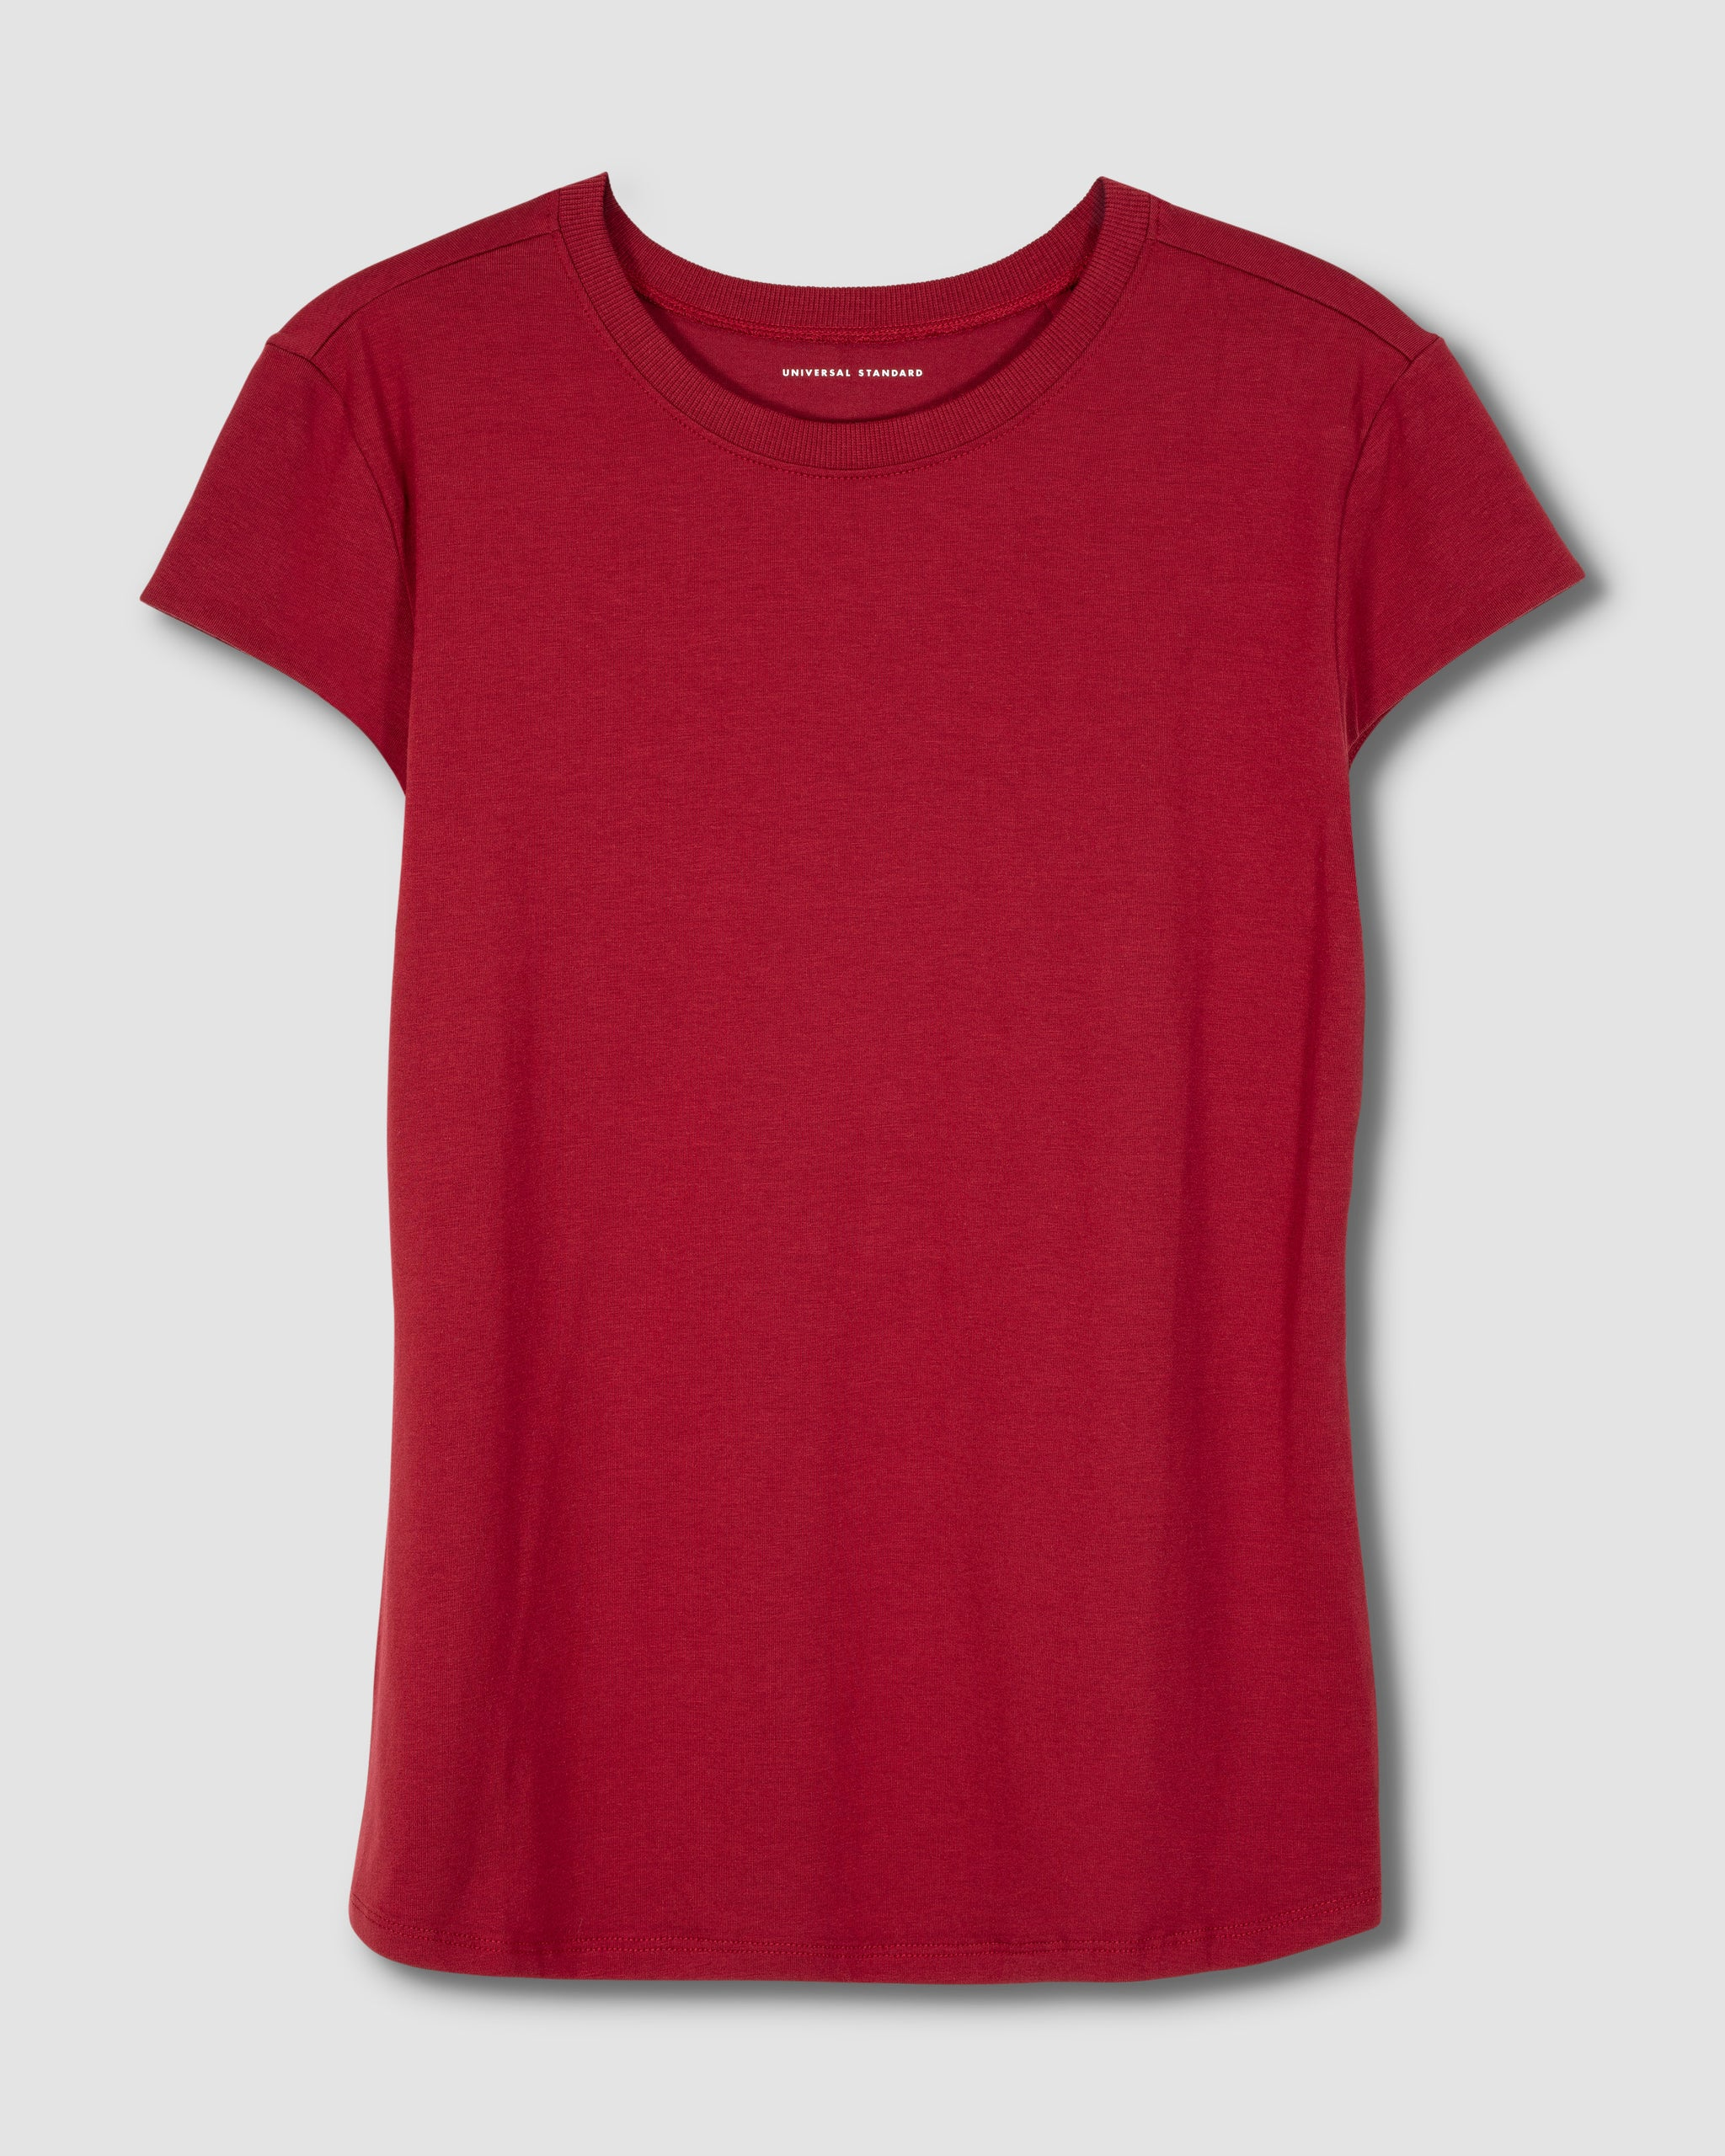 Ashley Cap Sleeve Tee - Red Dahlia